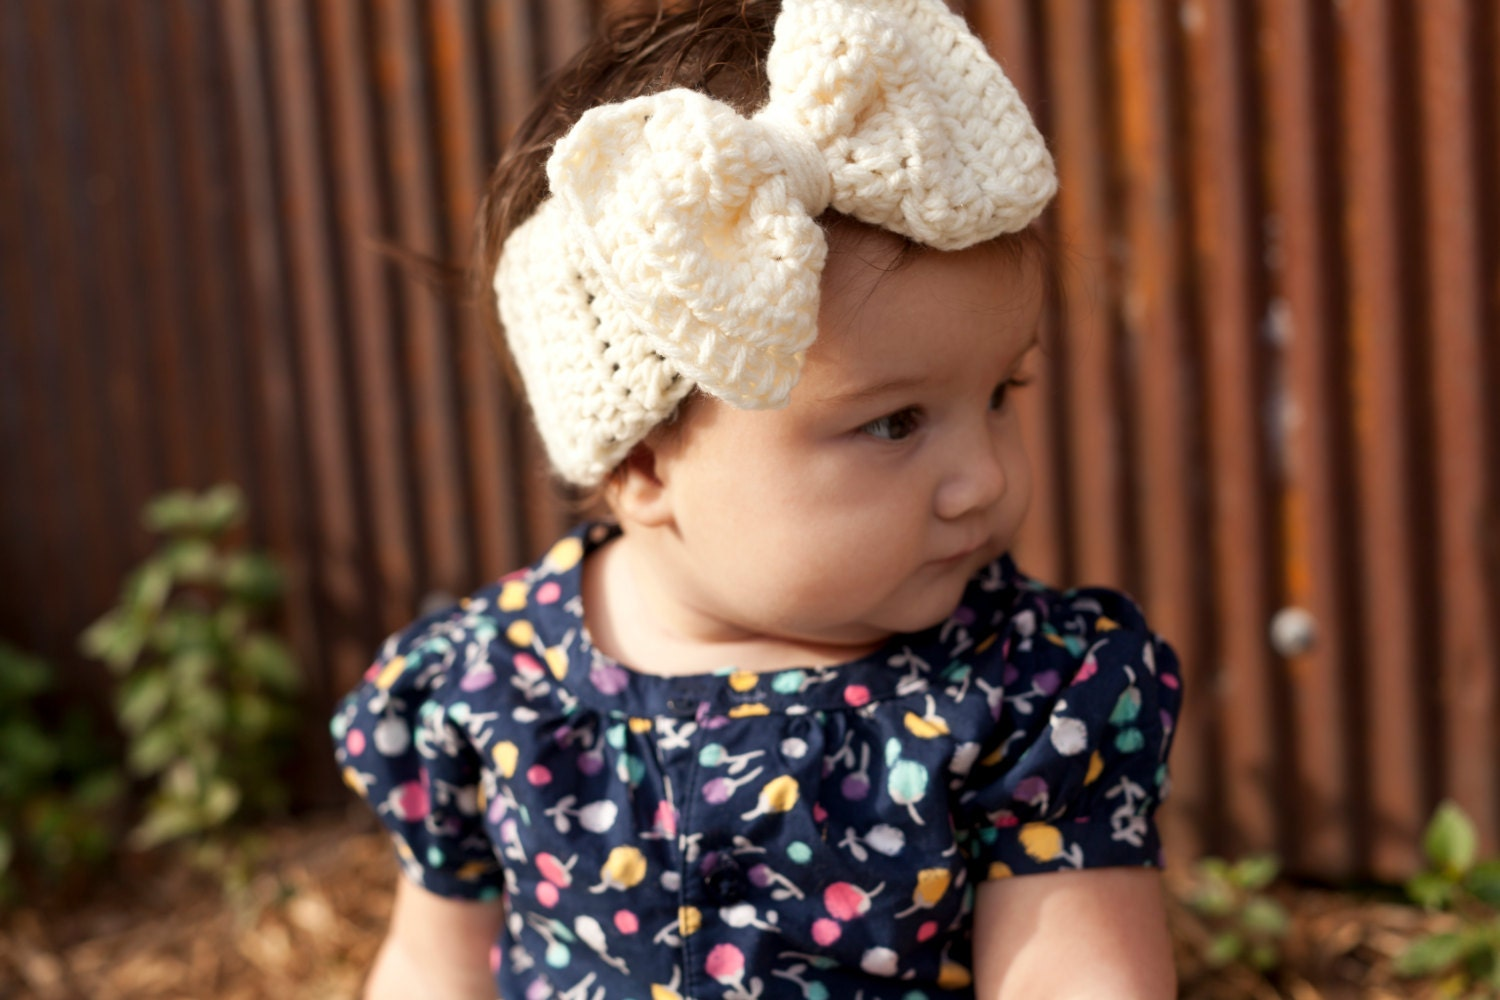 33 Crochet Ear Warmer Patterns - The Funky Stitch